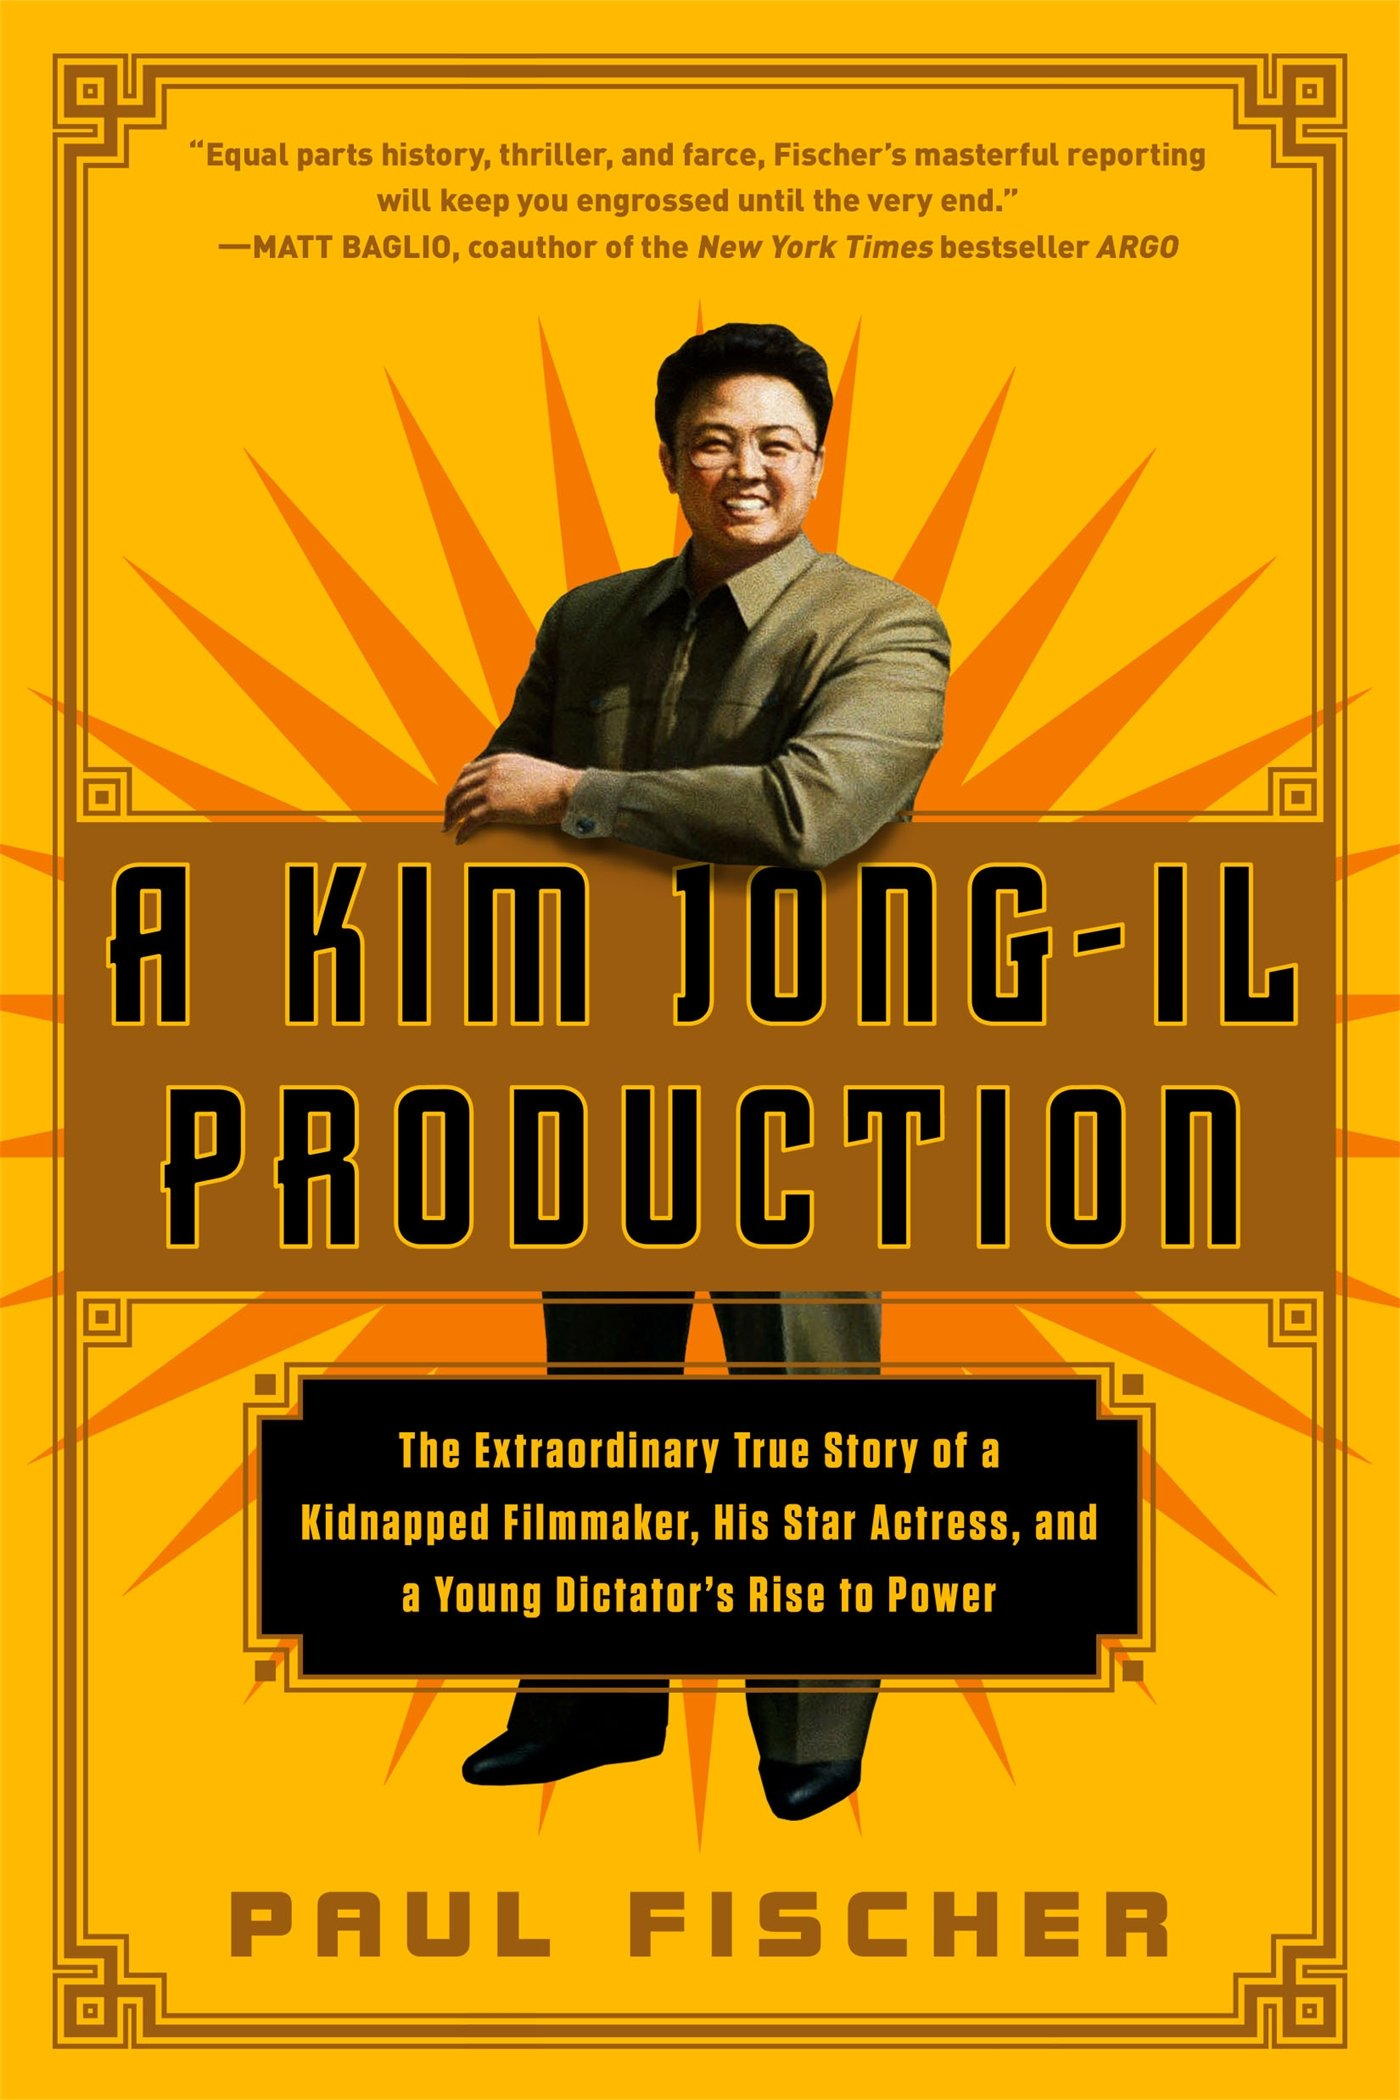 A Kim Jong-Il Production - Kim Jong-il was a massive film fan who was fed up with films produced in North Korea. In an attempt to improve the quality of North Korean films he decided to kidnap a famous actress and her director ex-husband. Abducted from Hong Kong's Repulse Bay, confined for years in prison, the pair were pressed into service producing and acting in North Korean films. Finally gaining trust they travelled abroad from where they managed to escape their minders and flee to the safety of the American embassy in Vienna. A bizarre, unbelievable yet factual account.